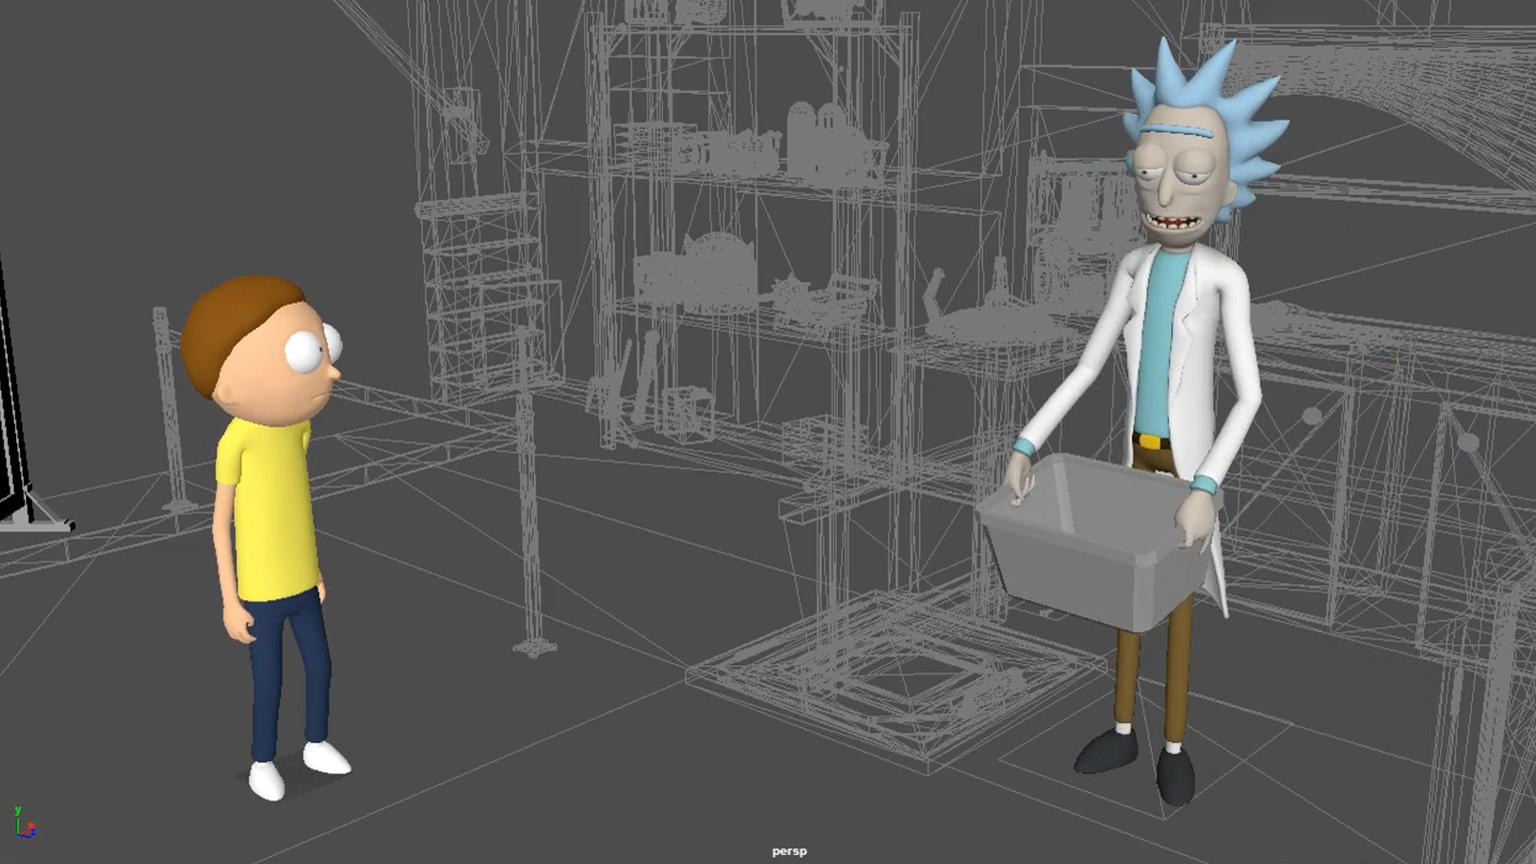 Virtual Rick Ality A Vr Game Made With Unity